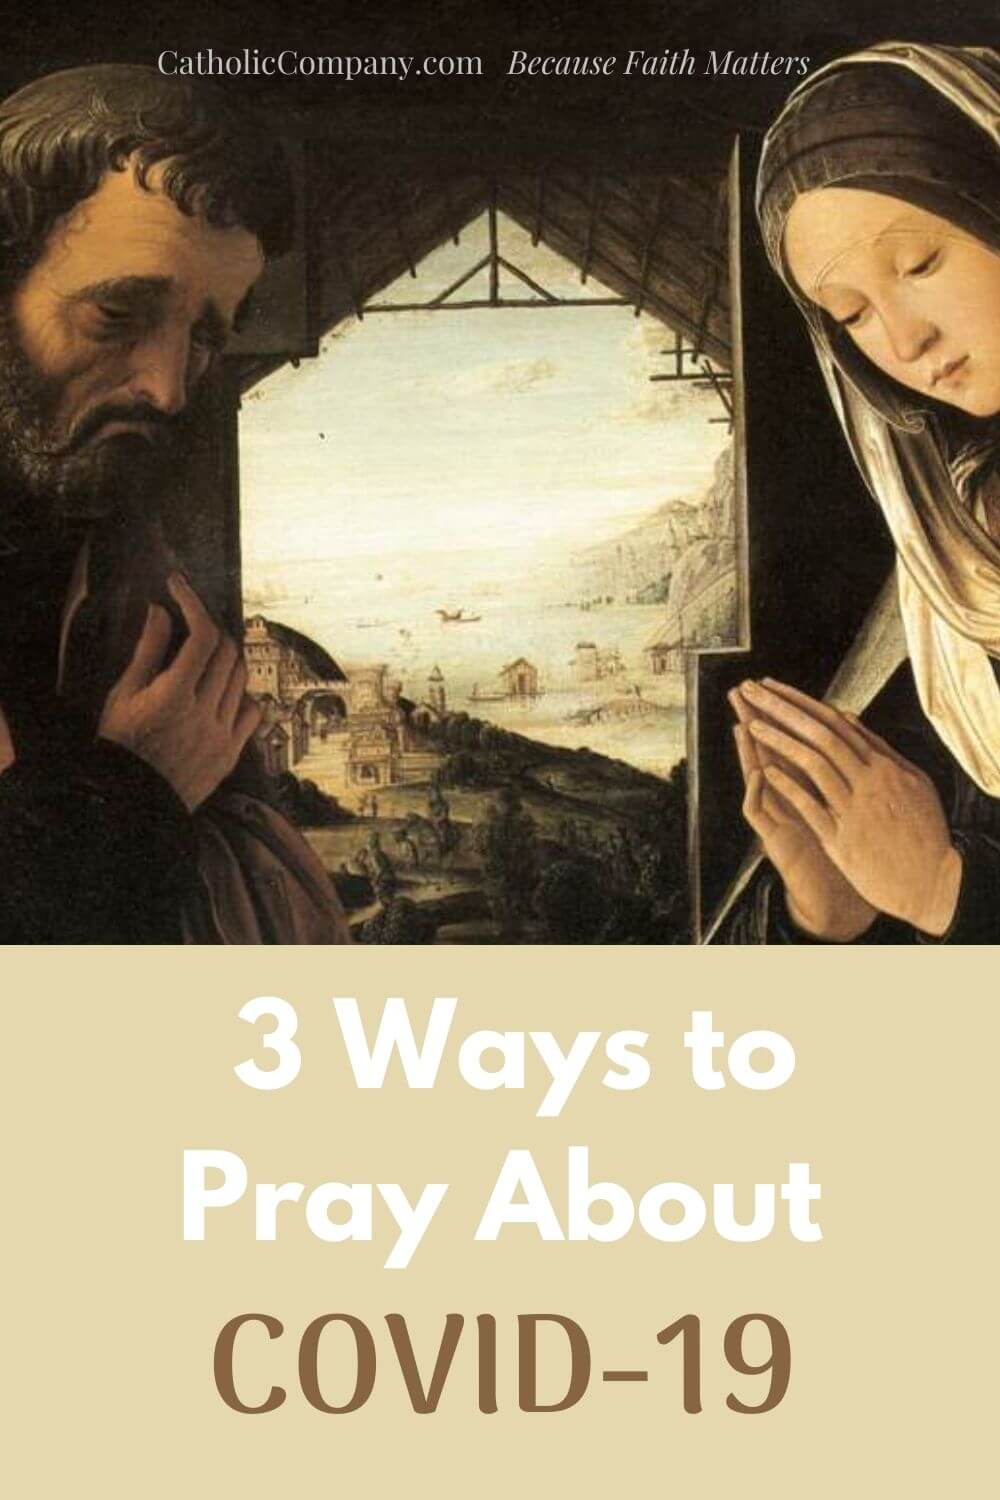 When we are confronted with a serious need or problem, like the Coronavirus, we usually pray in one way. Here are some suggestions on how to pray with greater specificity.